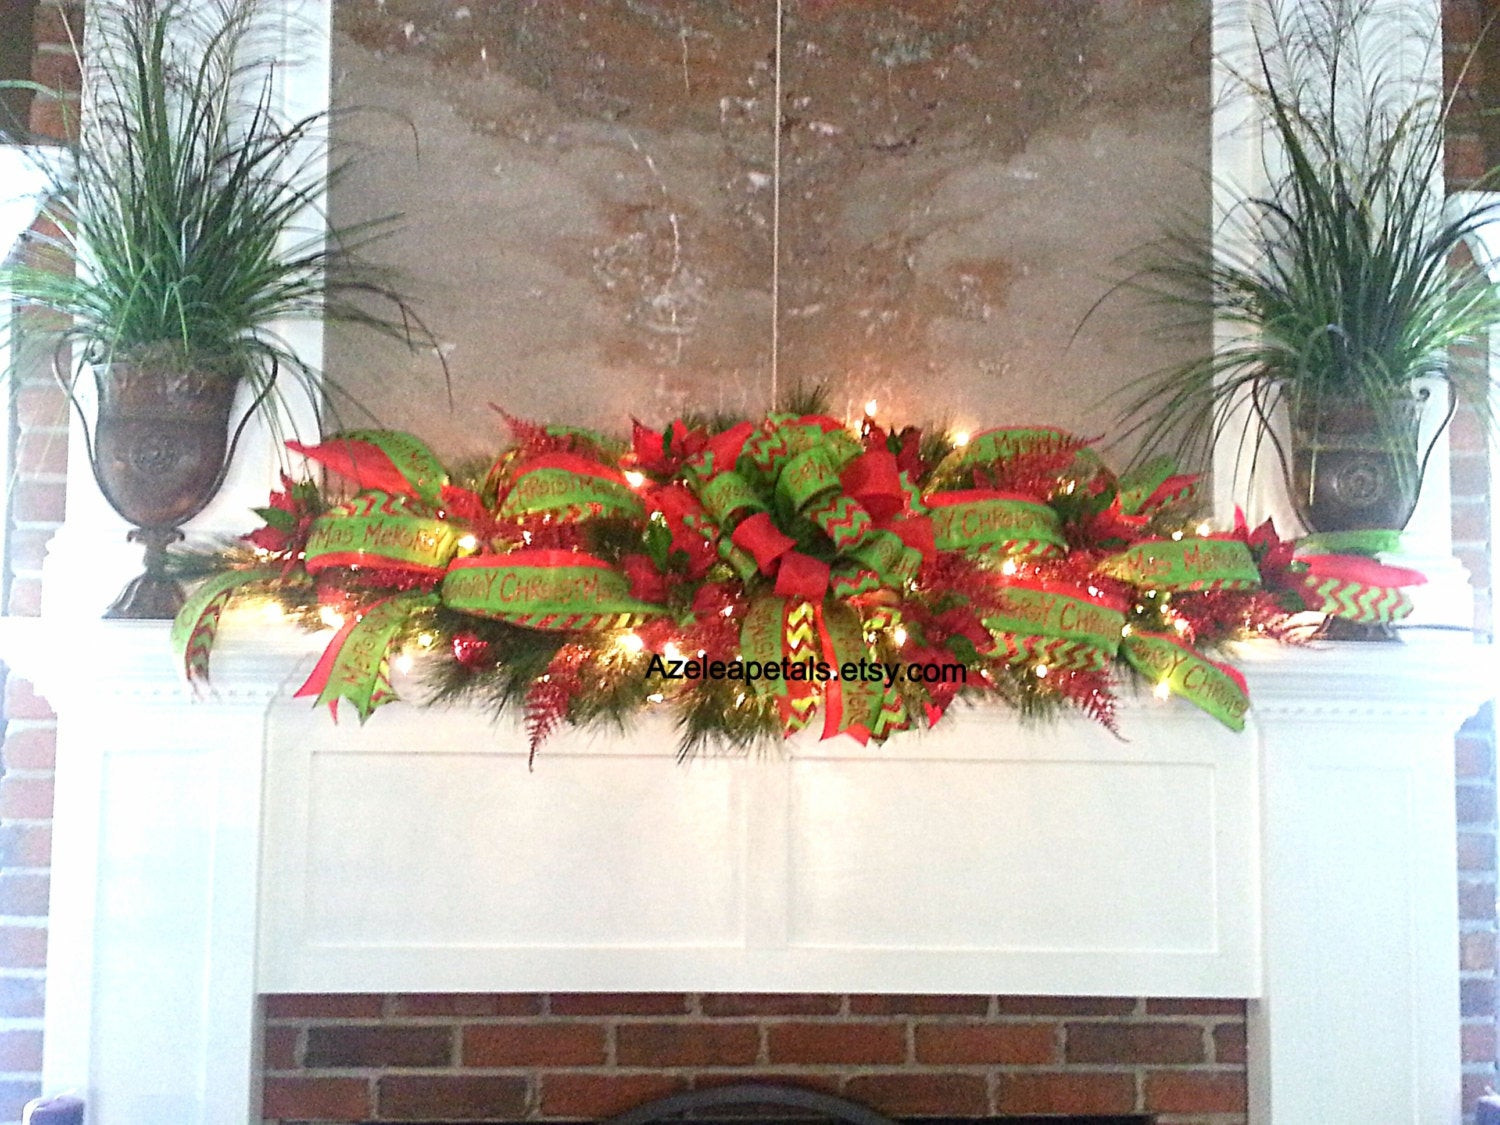 Christmas Swags For Fireplace  XL Mantel Garland Swag Christmas Fireplace Mantle Garland